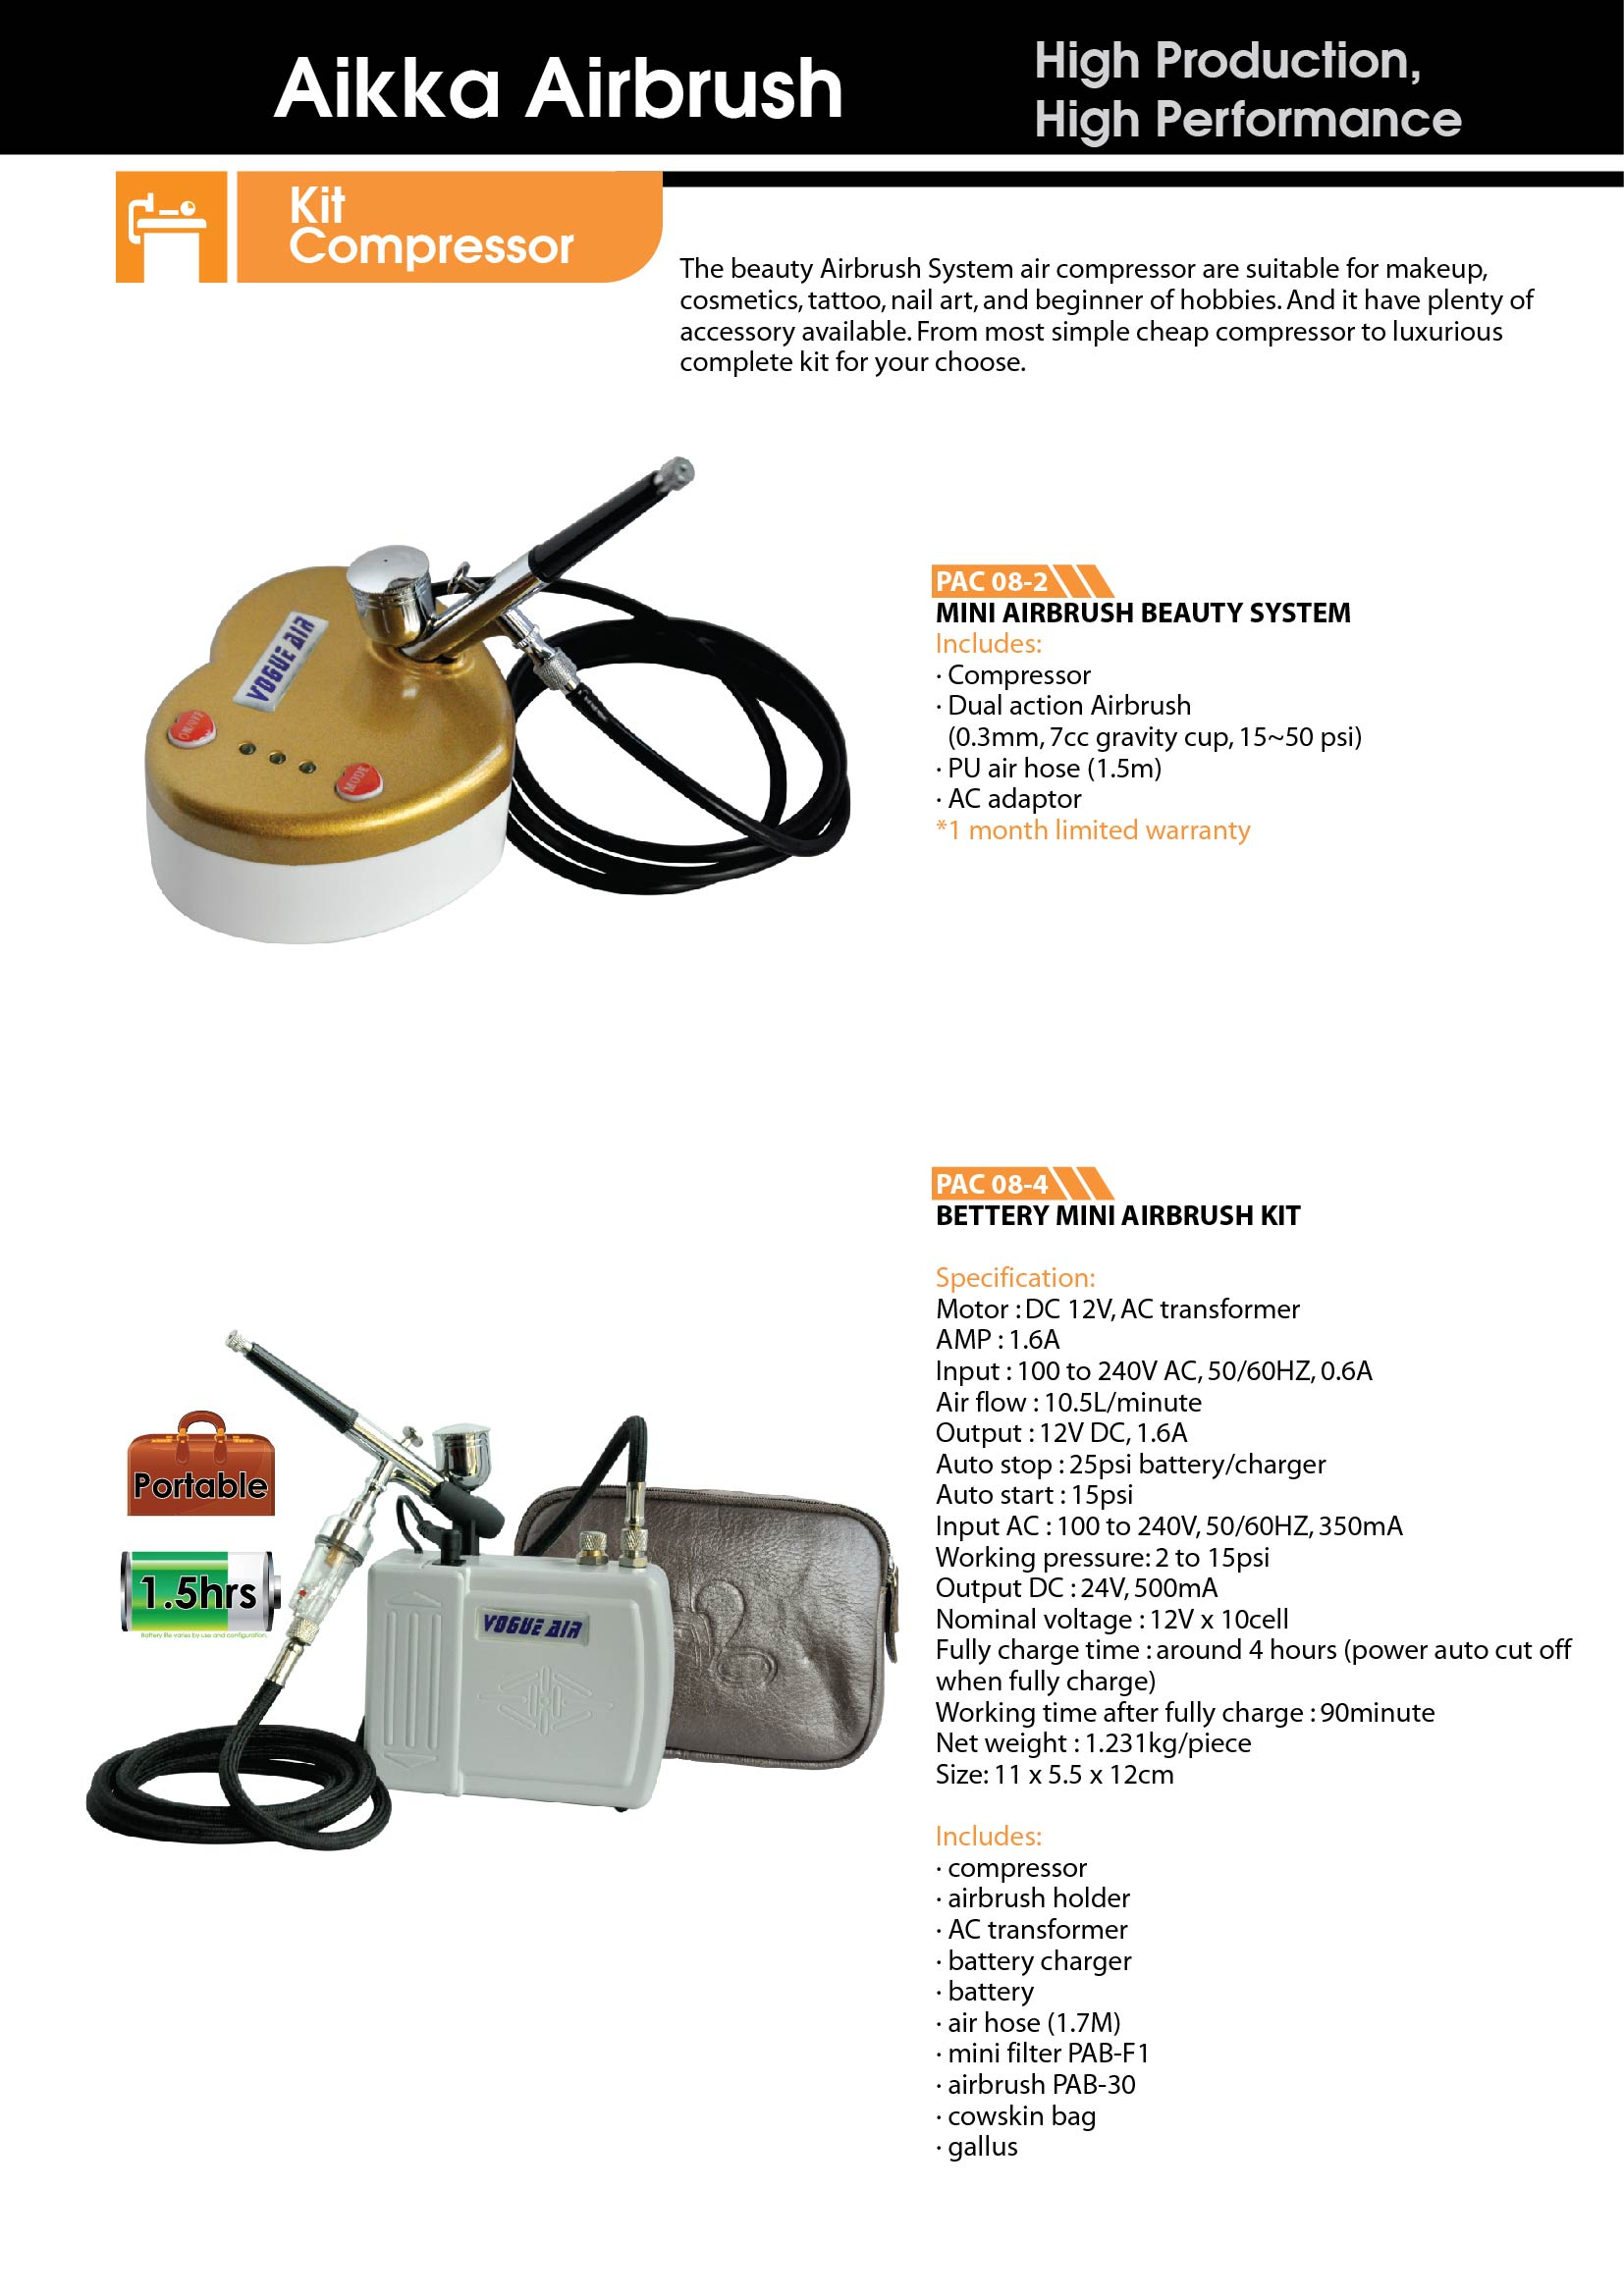 pac-61 airbrush kit